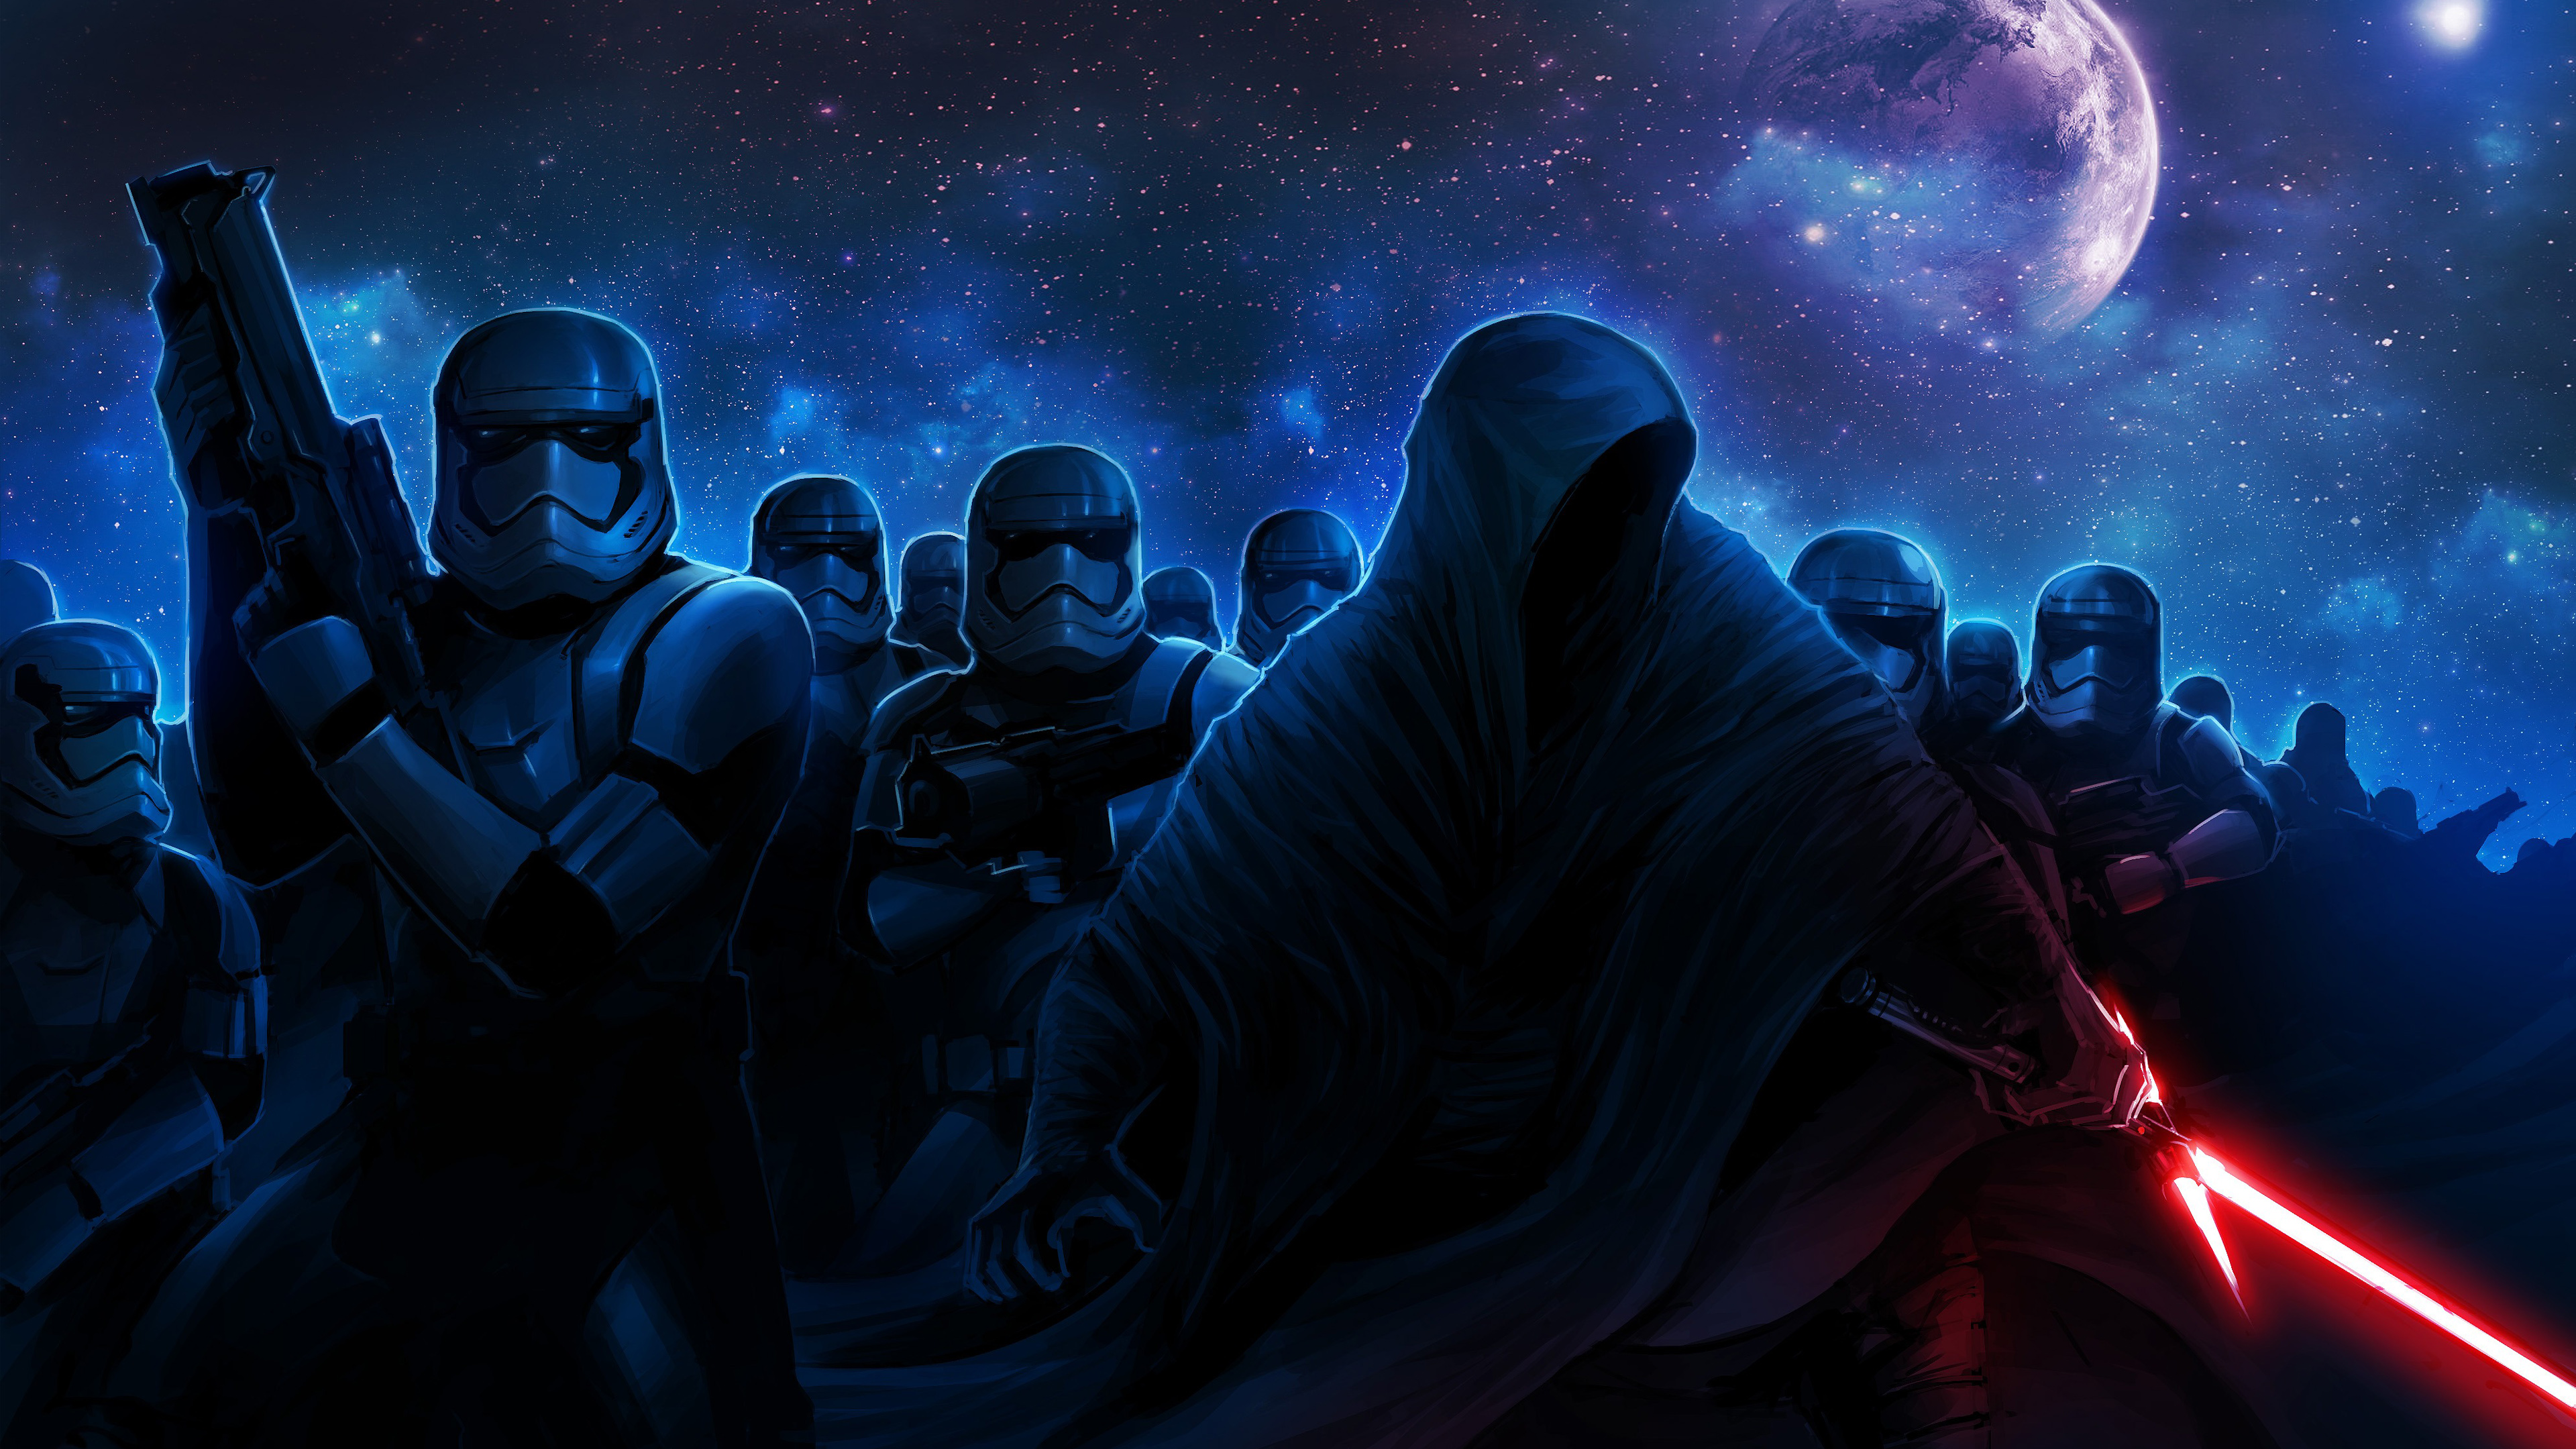 Stormtroopers Darth Vader Wallpapers HD Wallpapers 3840x2160